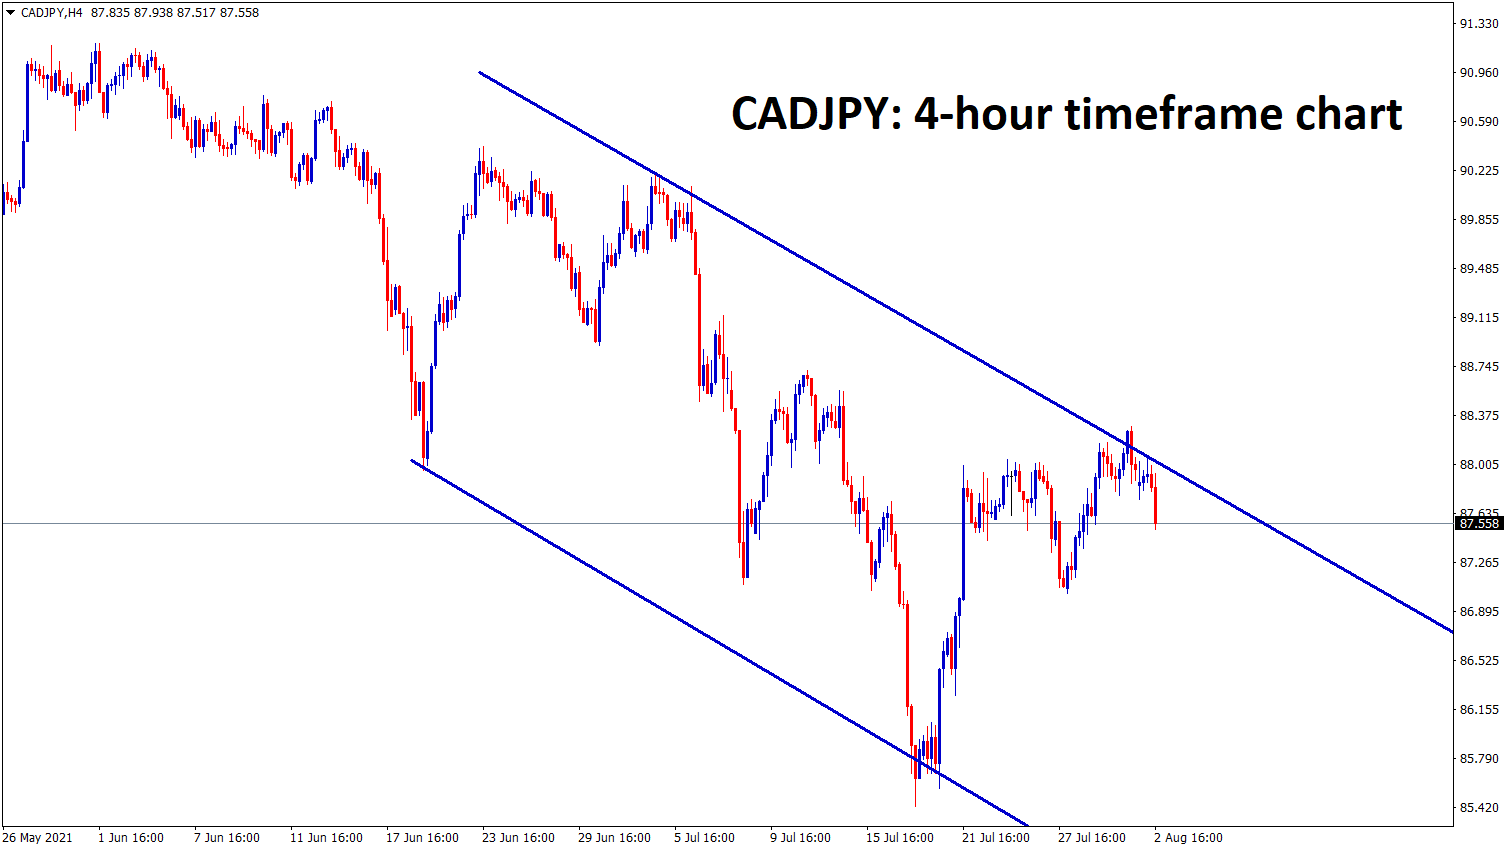 CADJPY is falling from the lower high zone of the descending channel range